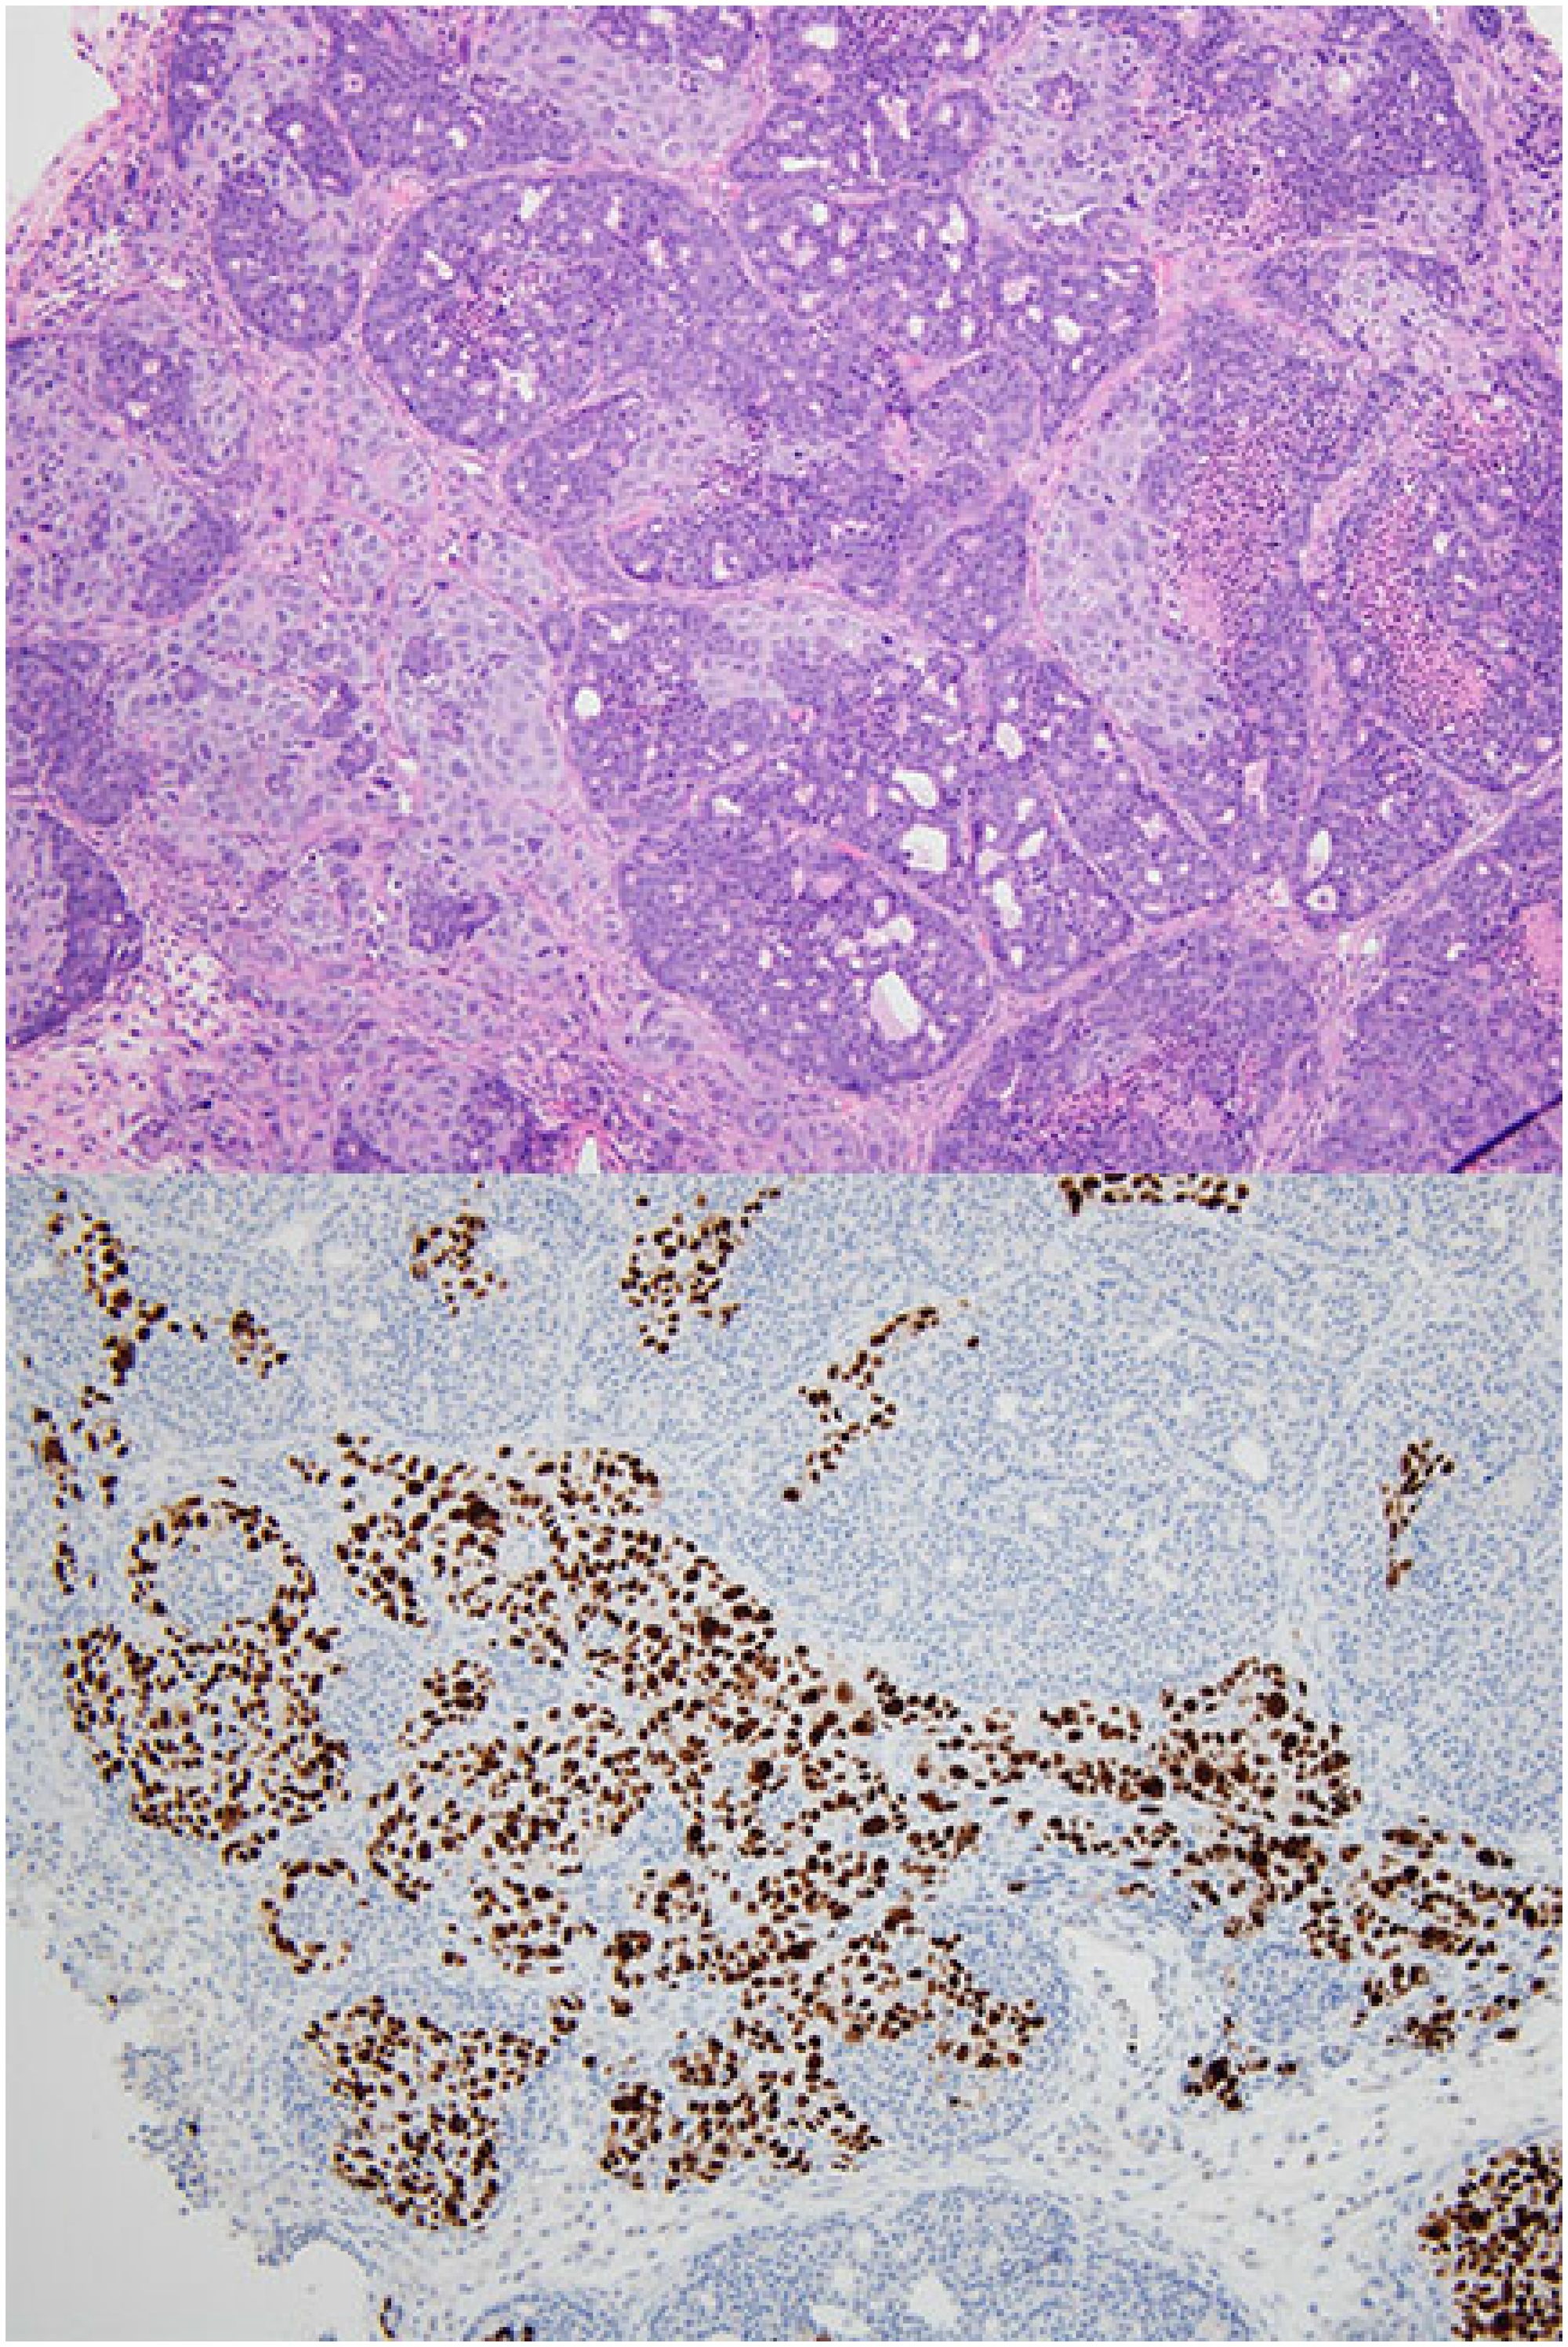 Collision tumor of mouse mammary tumor and patient-derived xenograft.